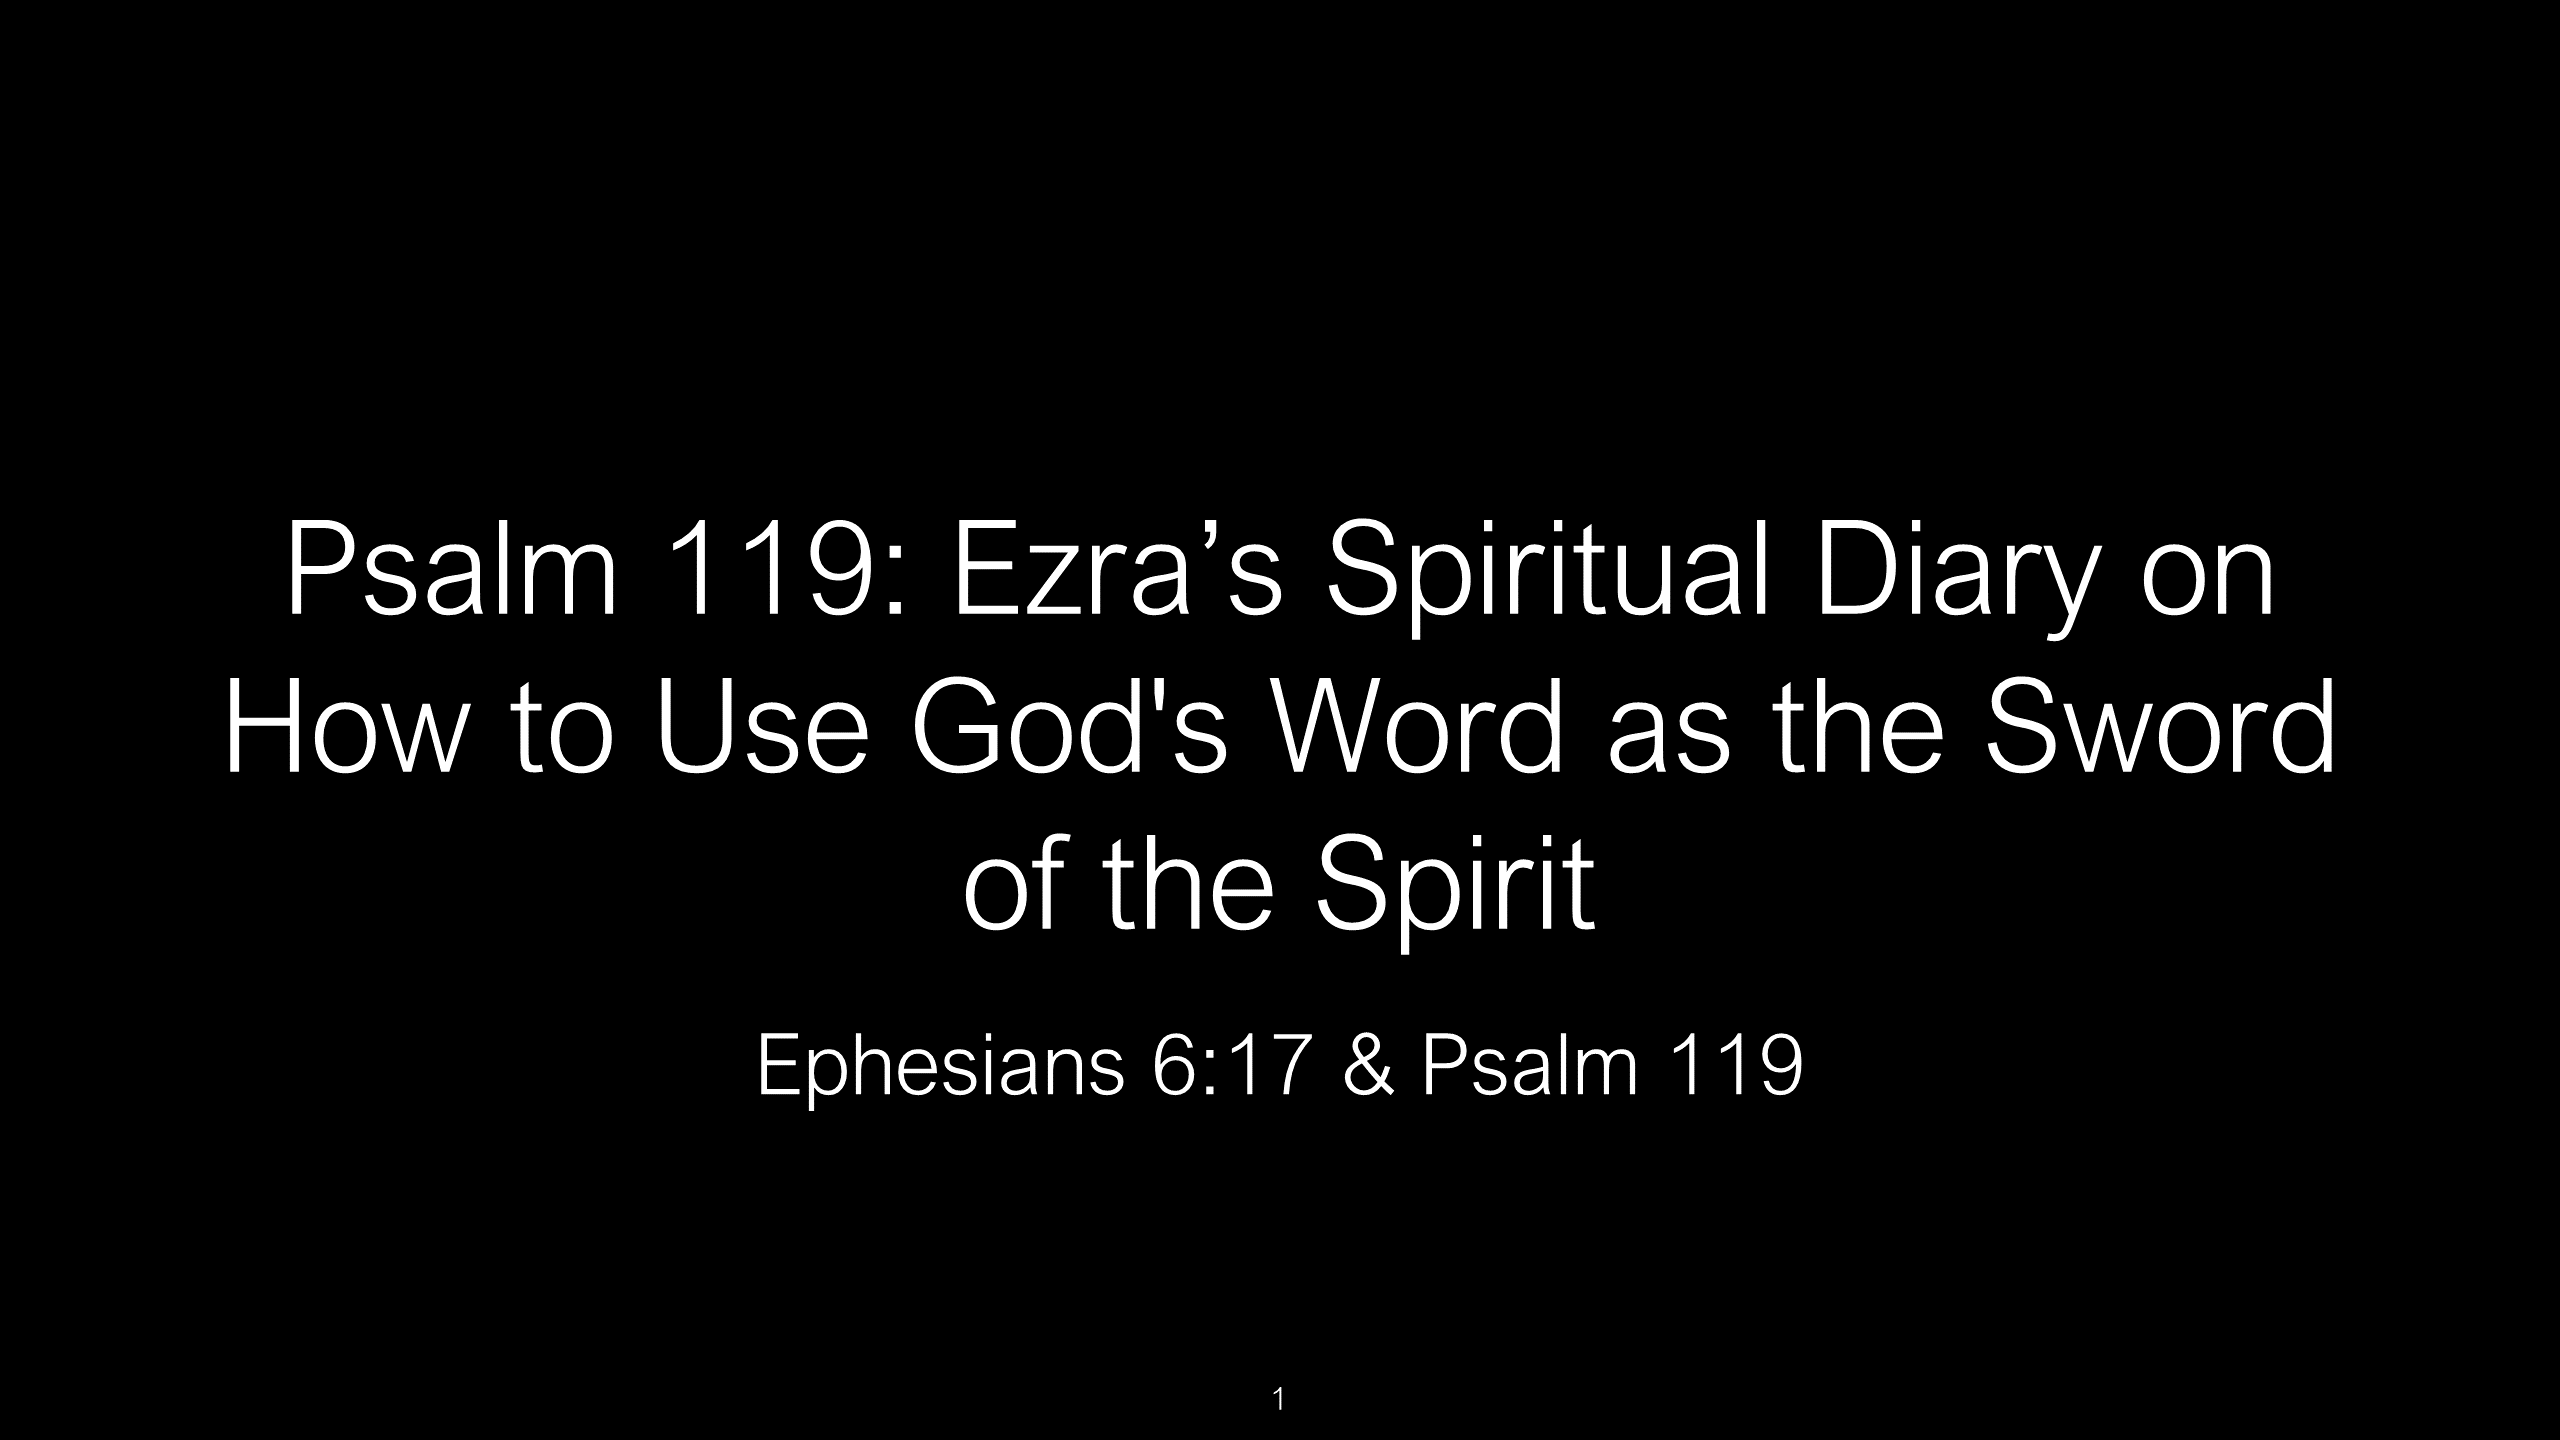 Psalm 119 - The Bible's Longest Chapter is a Spiritual Diary